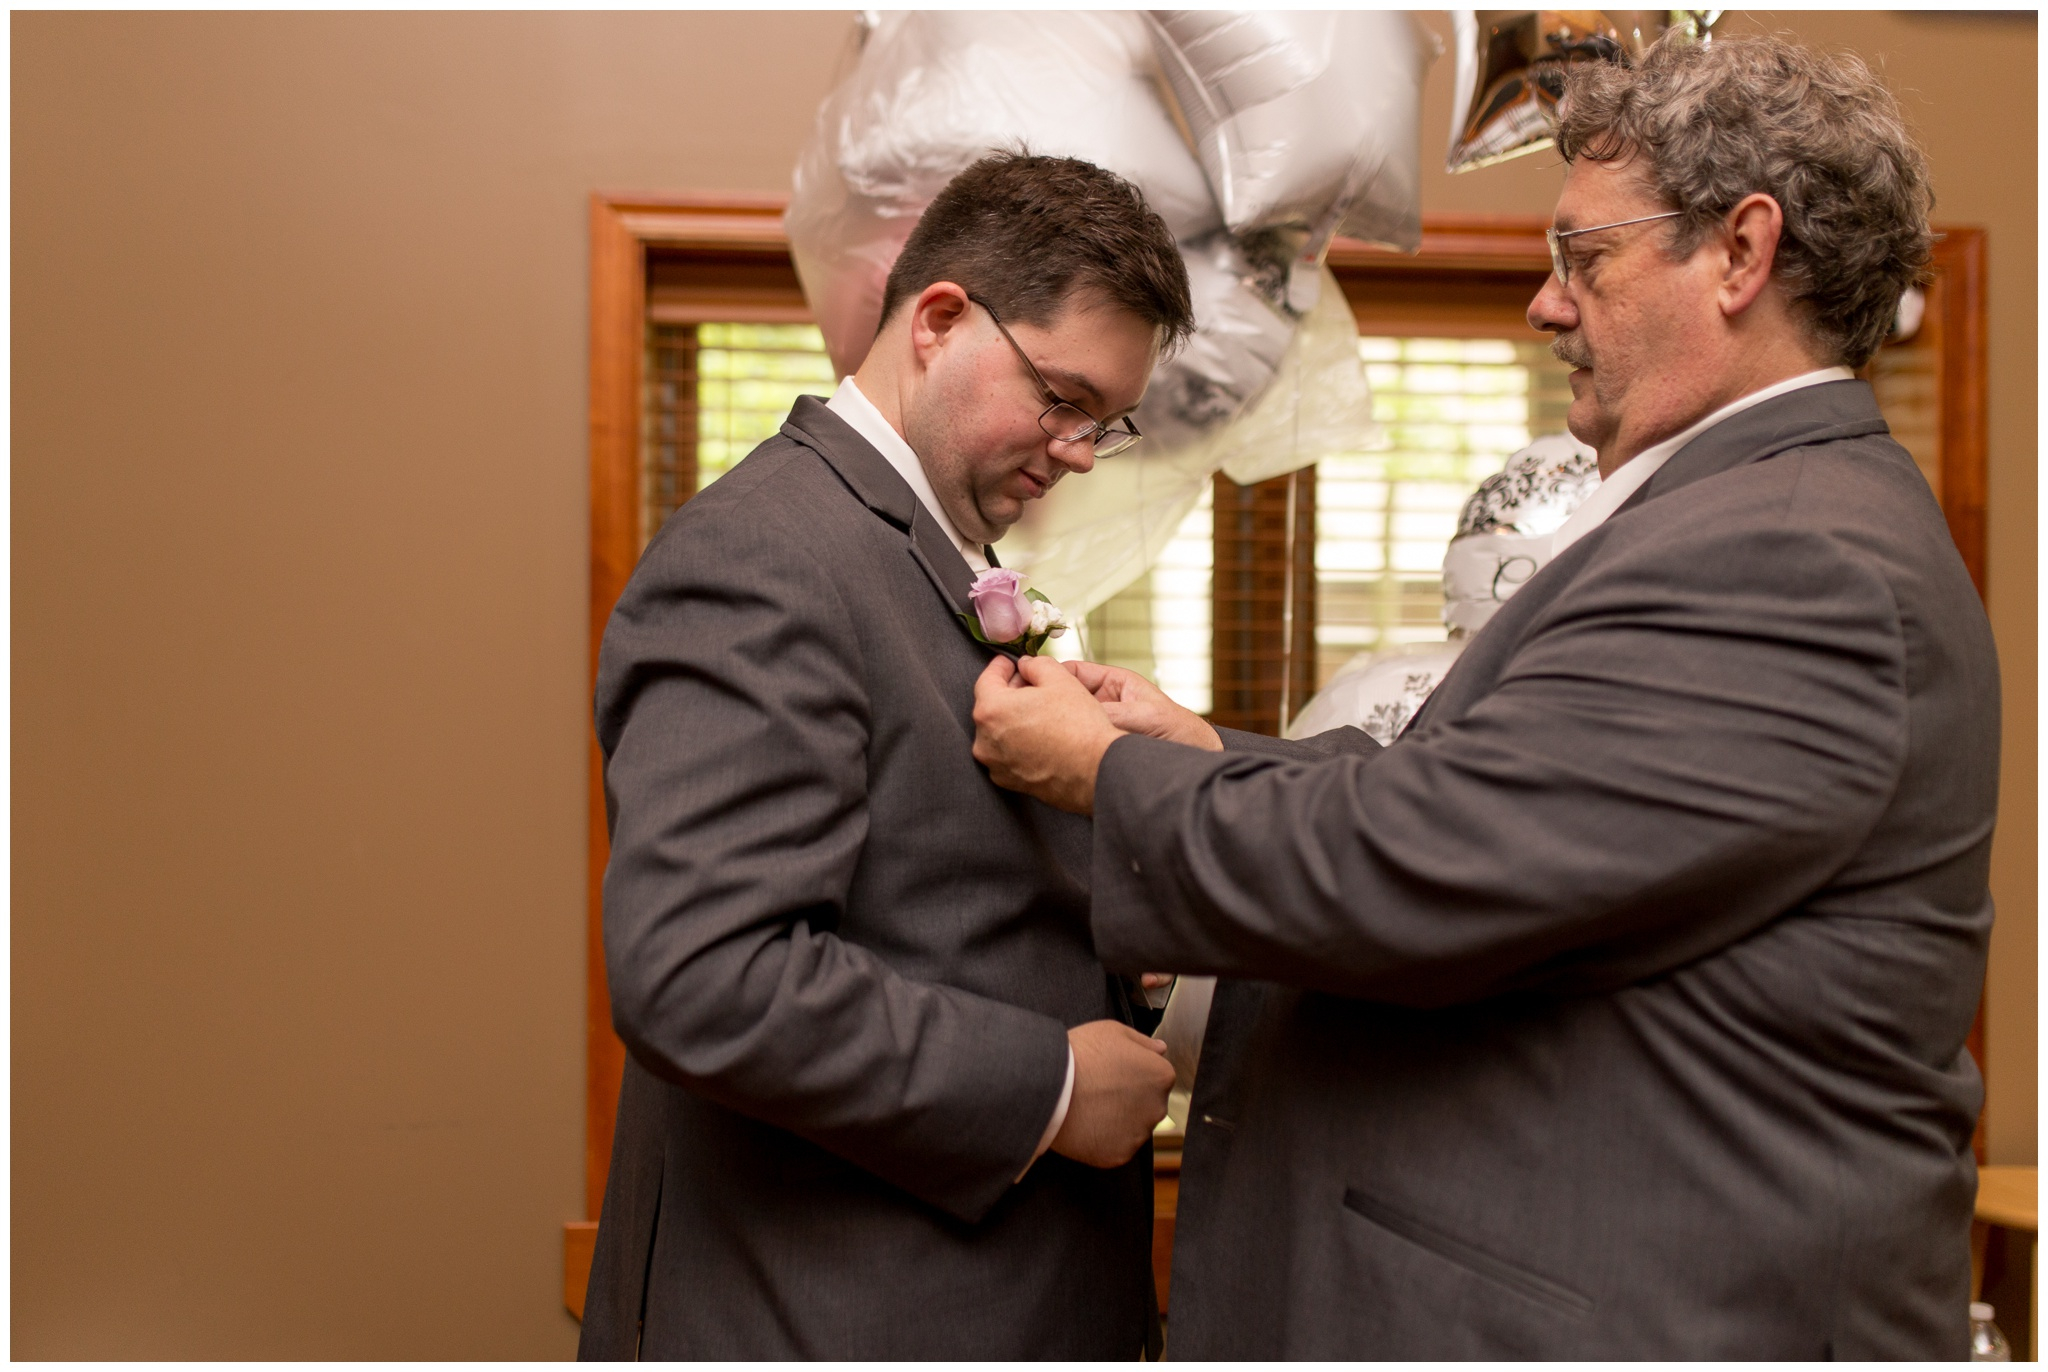 father of groom puts boutonniere on groom before wedding at Crossroads Community Church in Kokomo Indiana